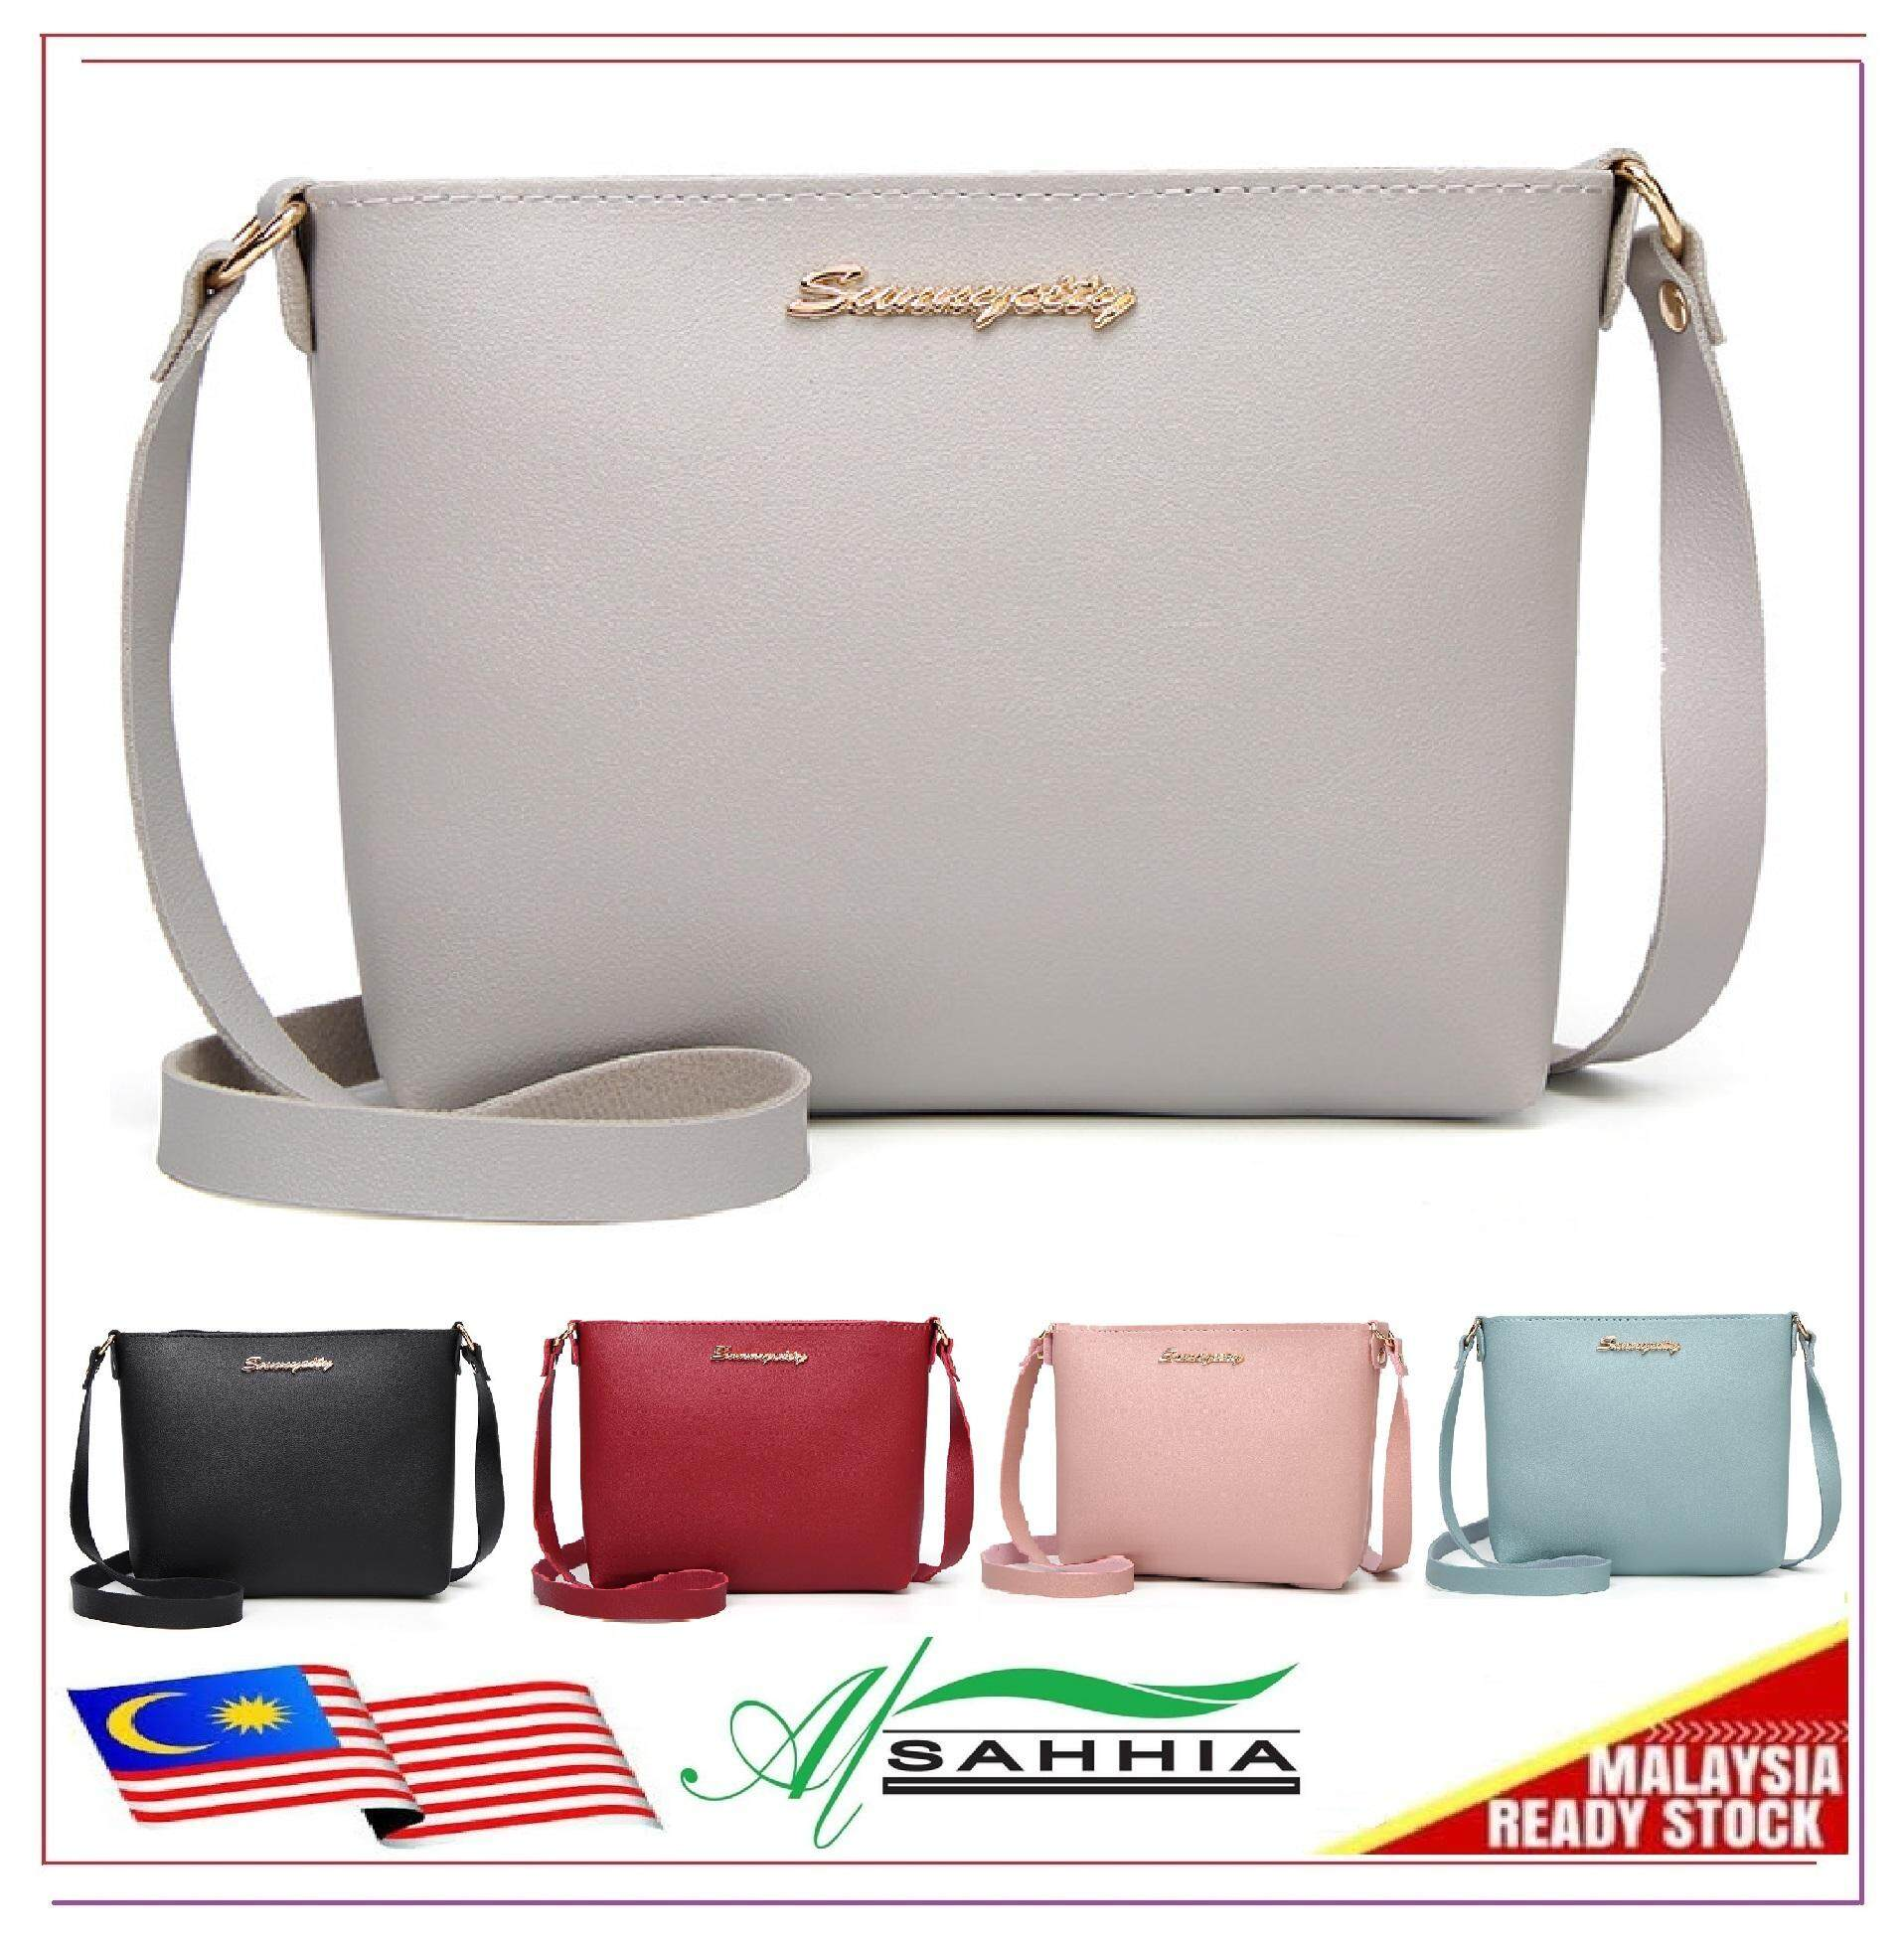 6837f9743c Al Sahhia Ready Stock Single Zip Sunny City Sling Shoulder Handbag